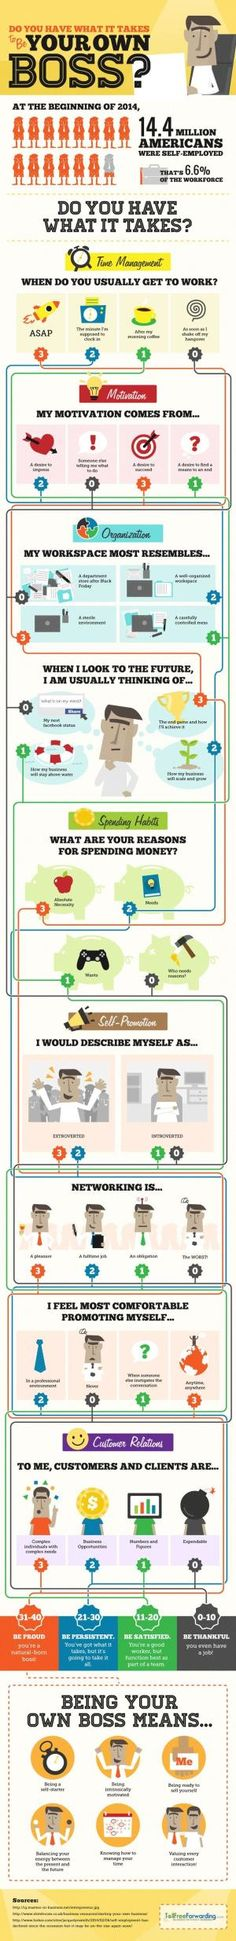 """""""Being self-employed is a challenge. The difference lies in the personality traits, professional ethics, discipline, frame of mind, and the determination to succeed."""" #Infographic Quiz to determine how well your work personality fits the profile of leading your own company. by norma"""